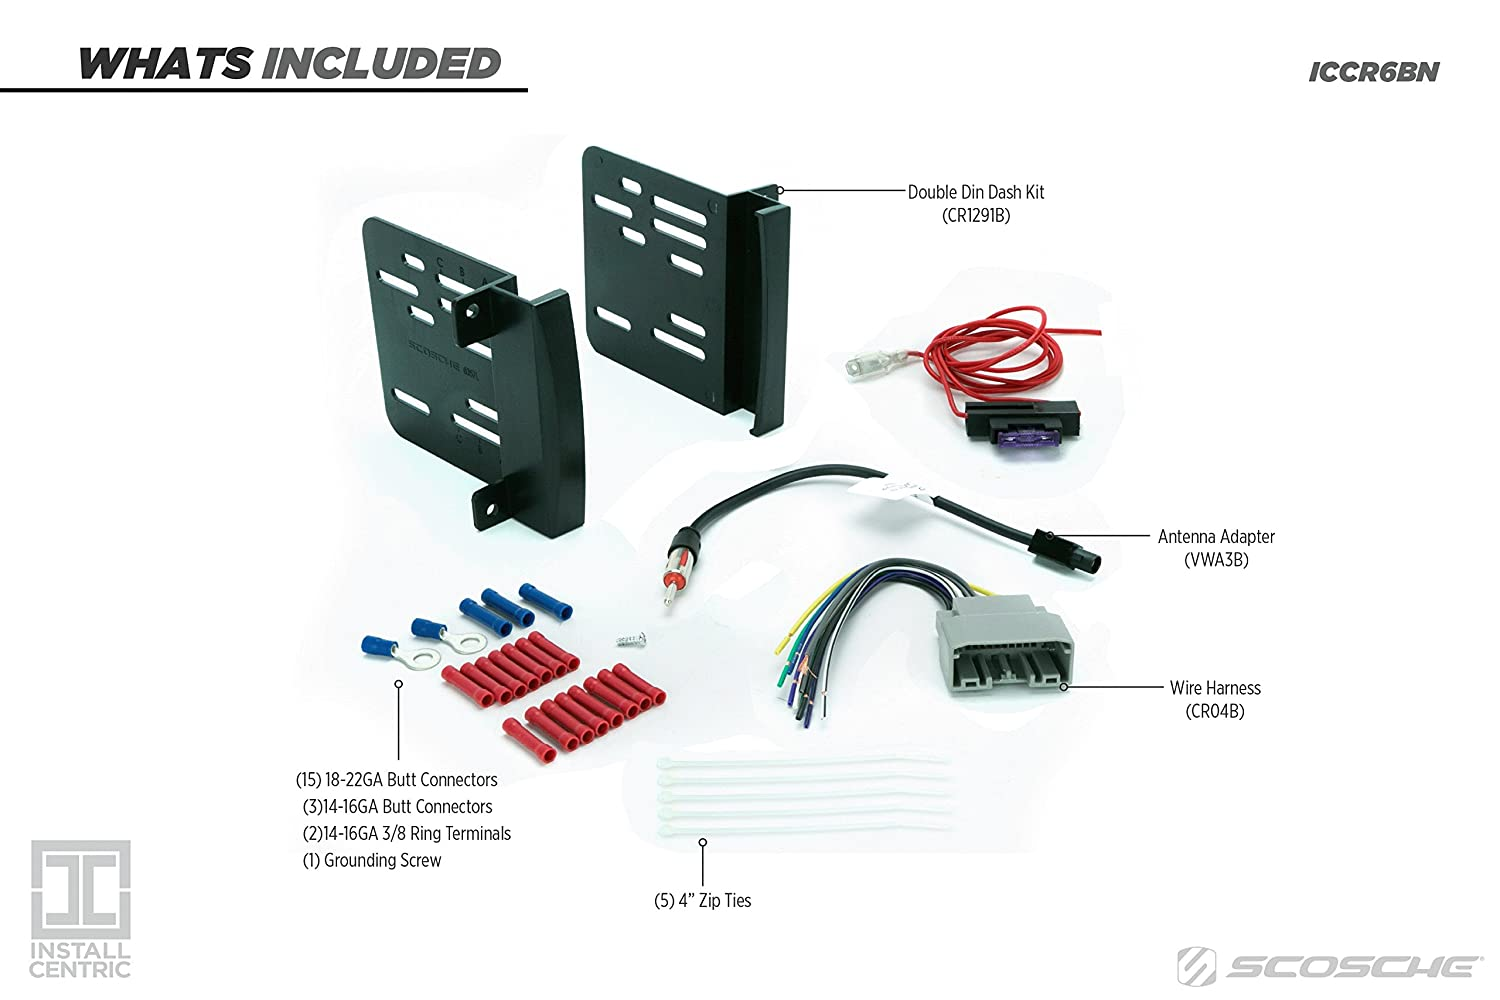 Install Centric Iccr6bn Chrysler Dodge Jeep 2007 14 Double Din Wiring Harness Complete Installation Kit Car Electronics